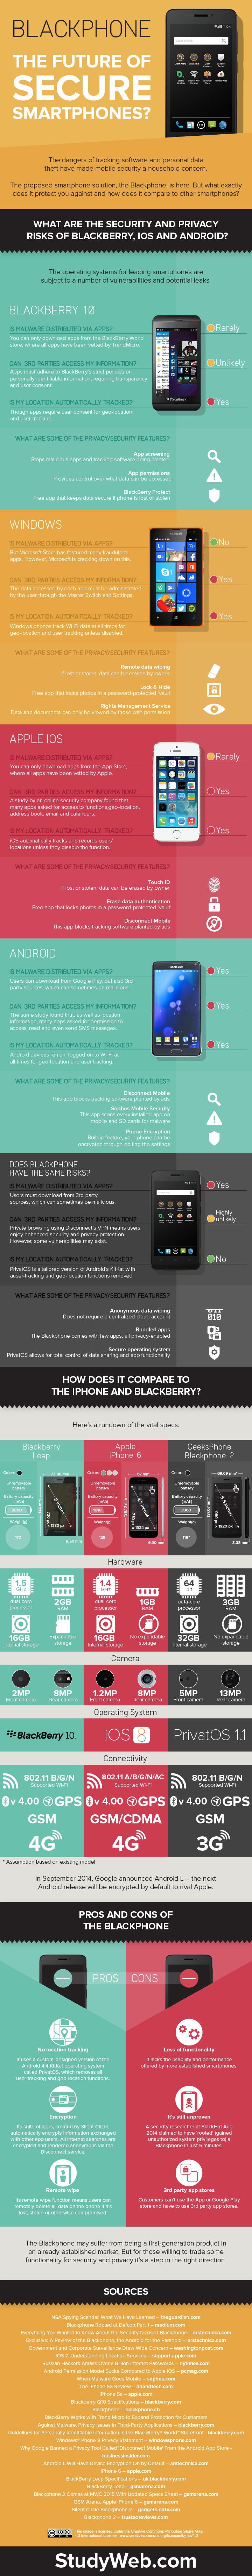 Blackphone-the-future-of-secure-smartphones